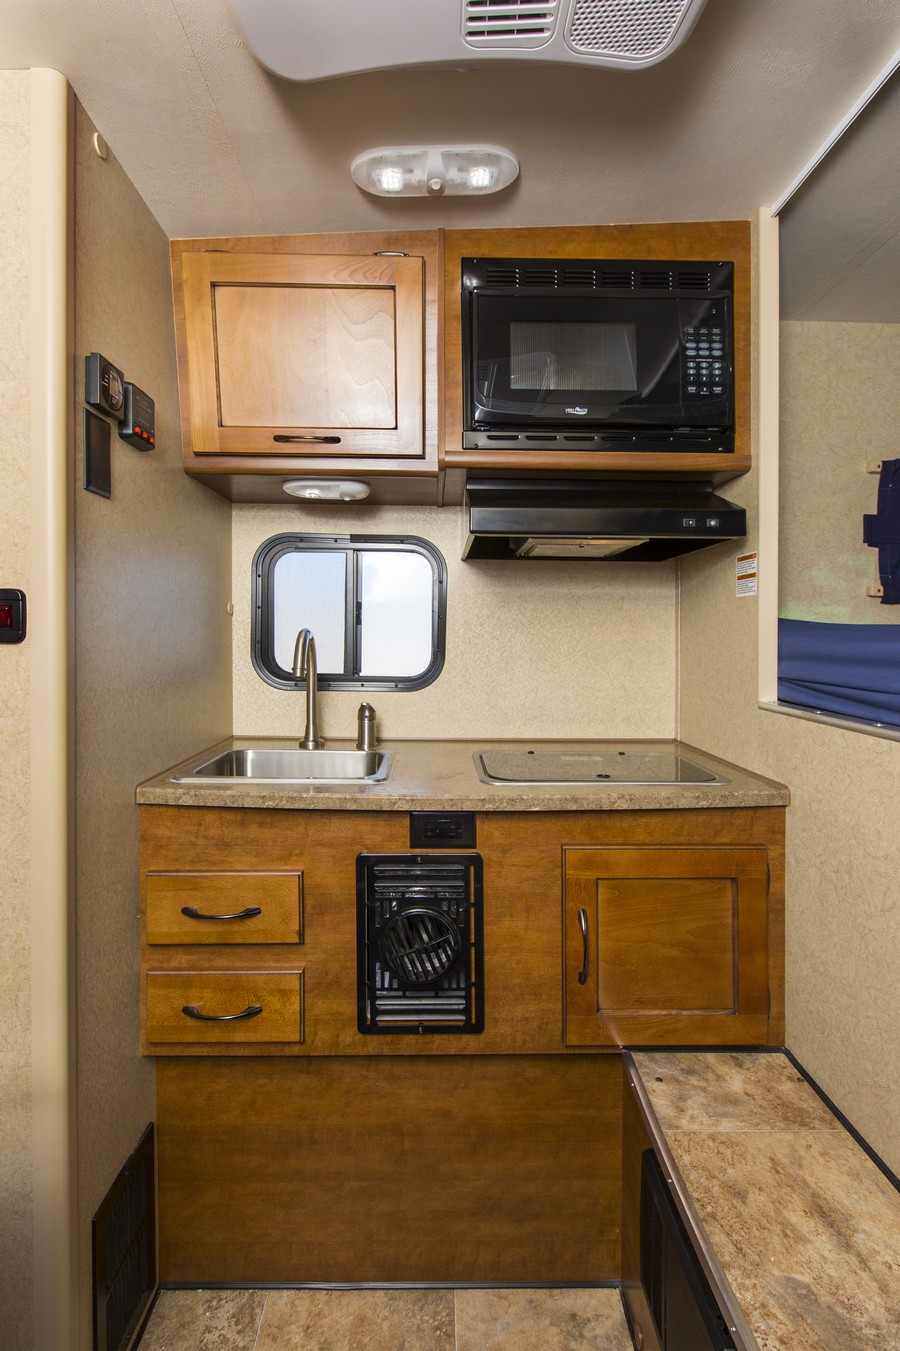 Cruise america t17 truck camper usa amp canada motorhome holidays - Photos